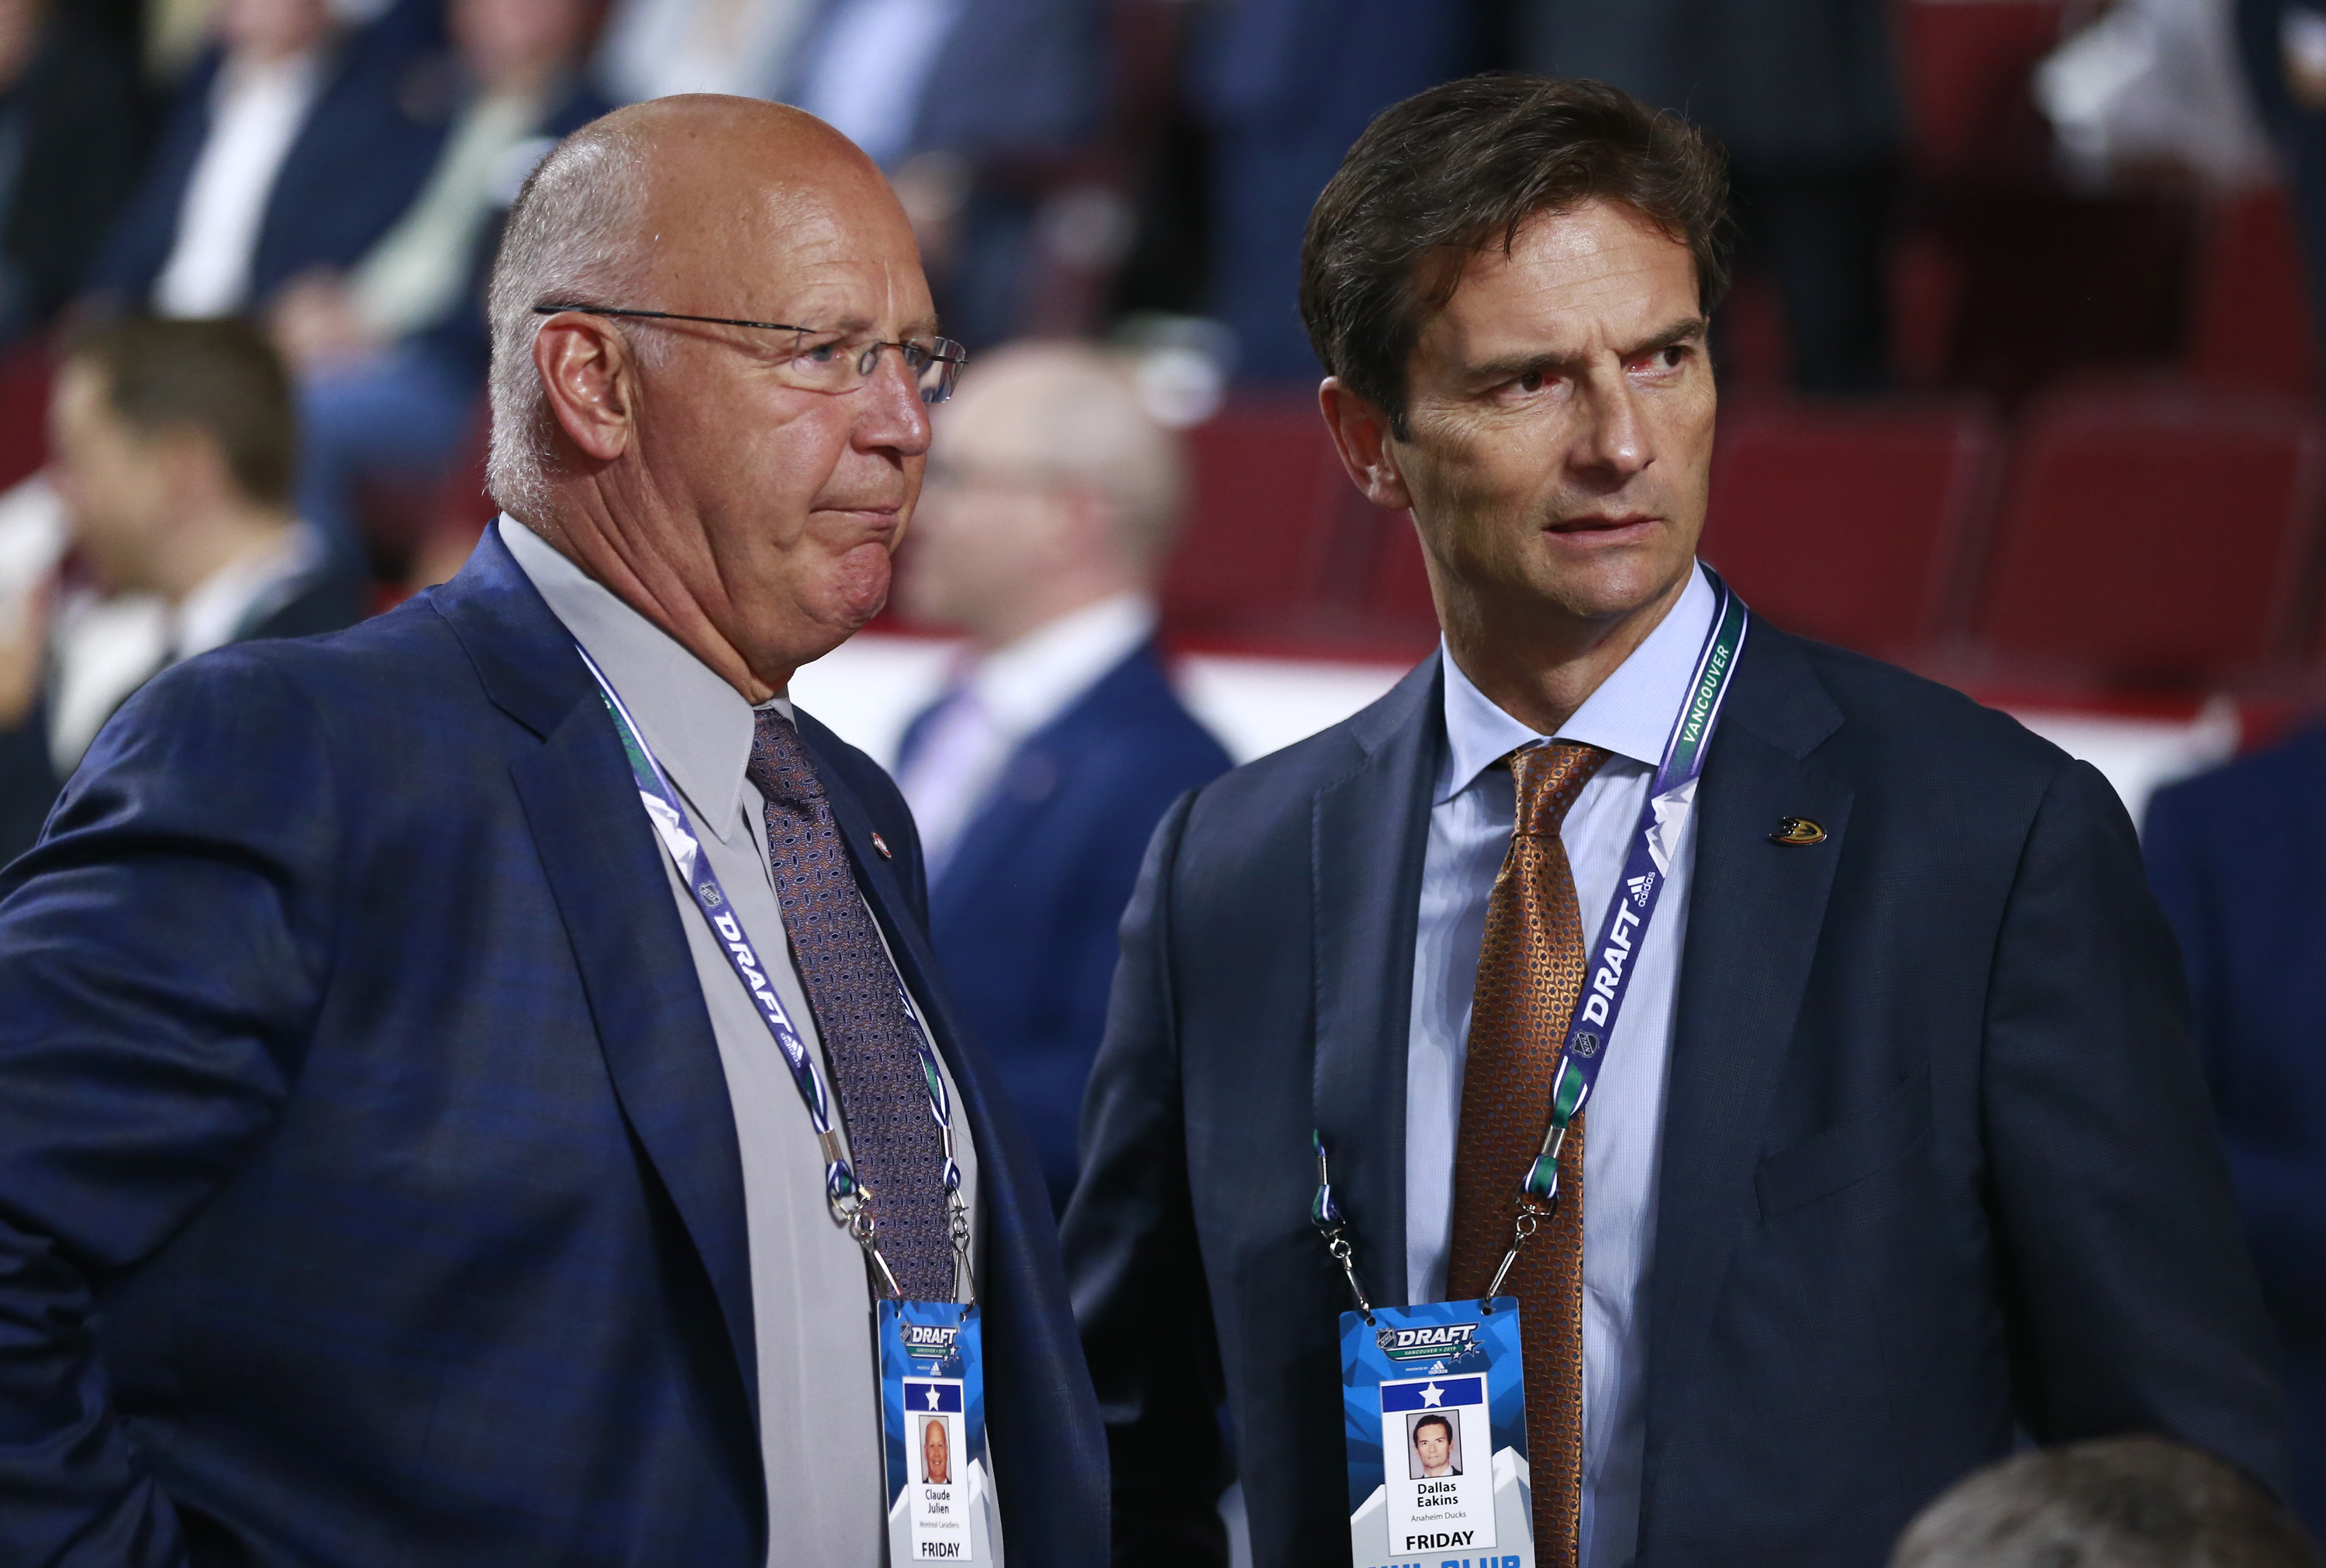 VANCOUVER, BRITISH COLUMBIA - JUNE 21: Head coach Claude Julien of the Montreal Canadiens and head coach Dallas Eakins of the Anaheim Ducks look on from the draft floor during the first round of the 2019 NHL Draft at Rogers Arena on June 21, 2019 in Vancouver, Canada.